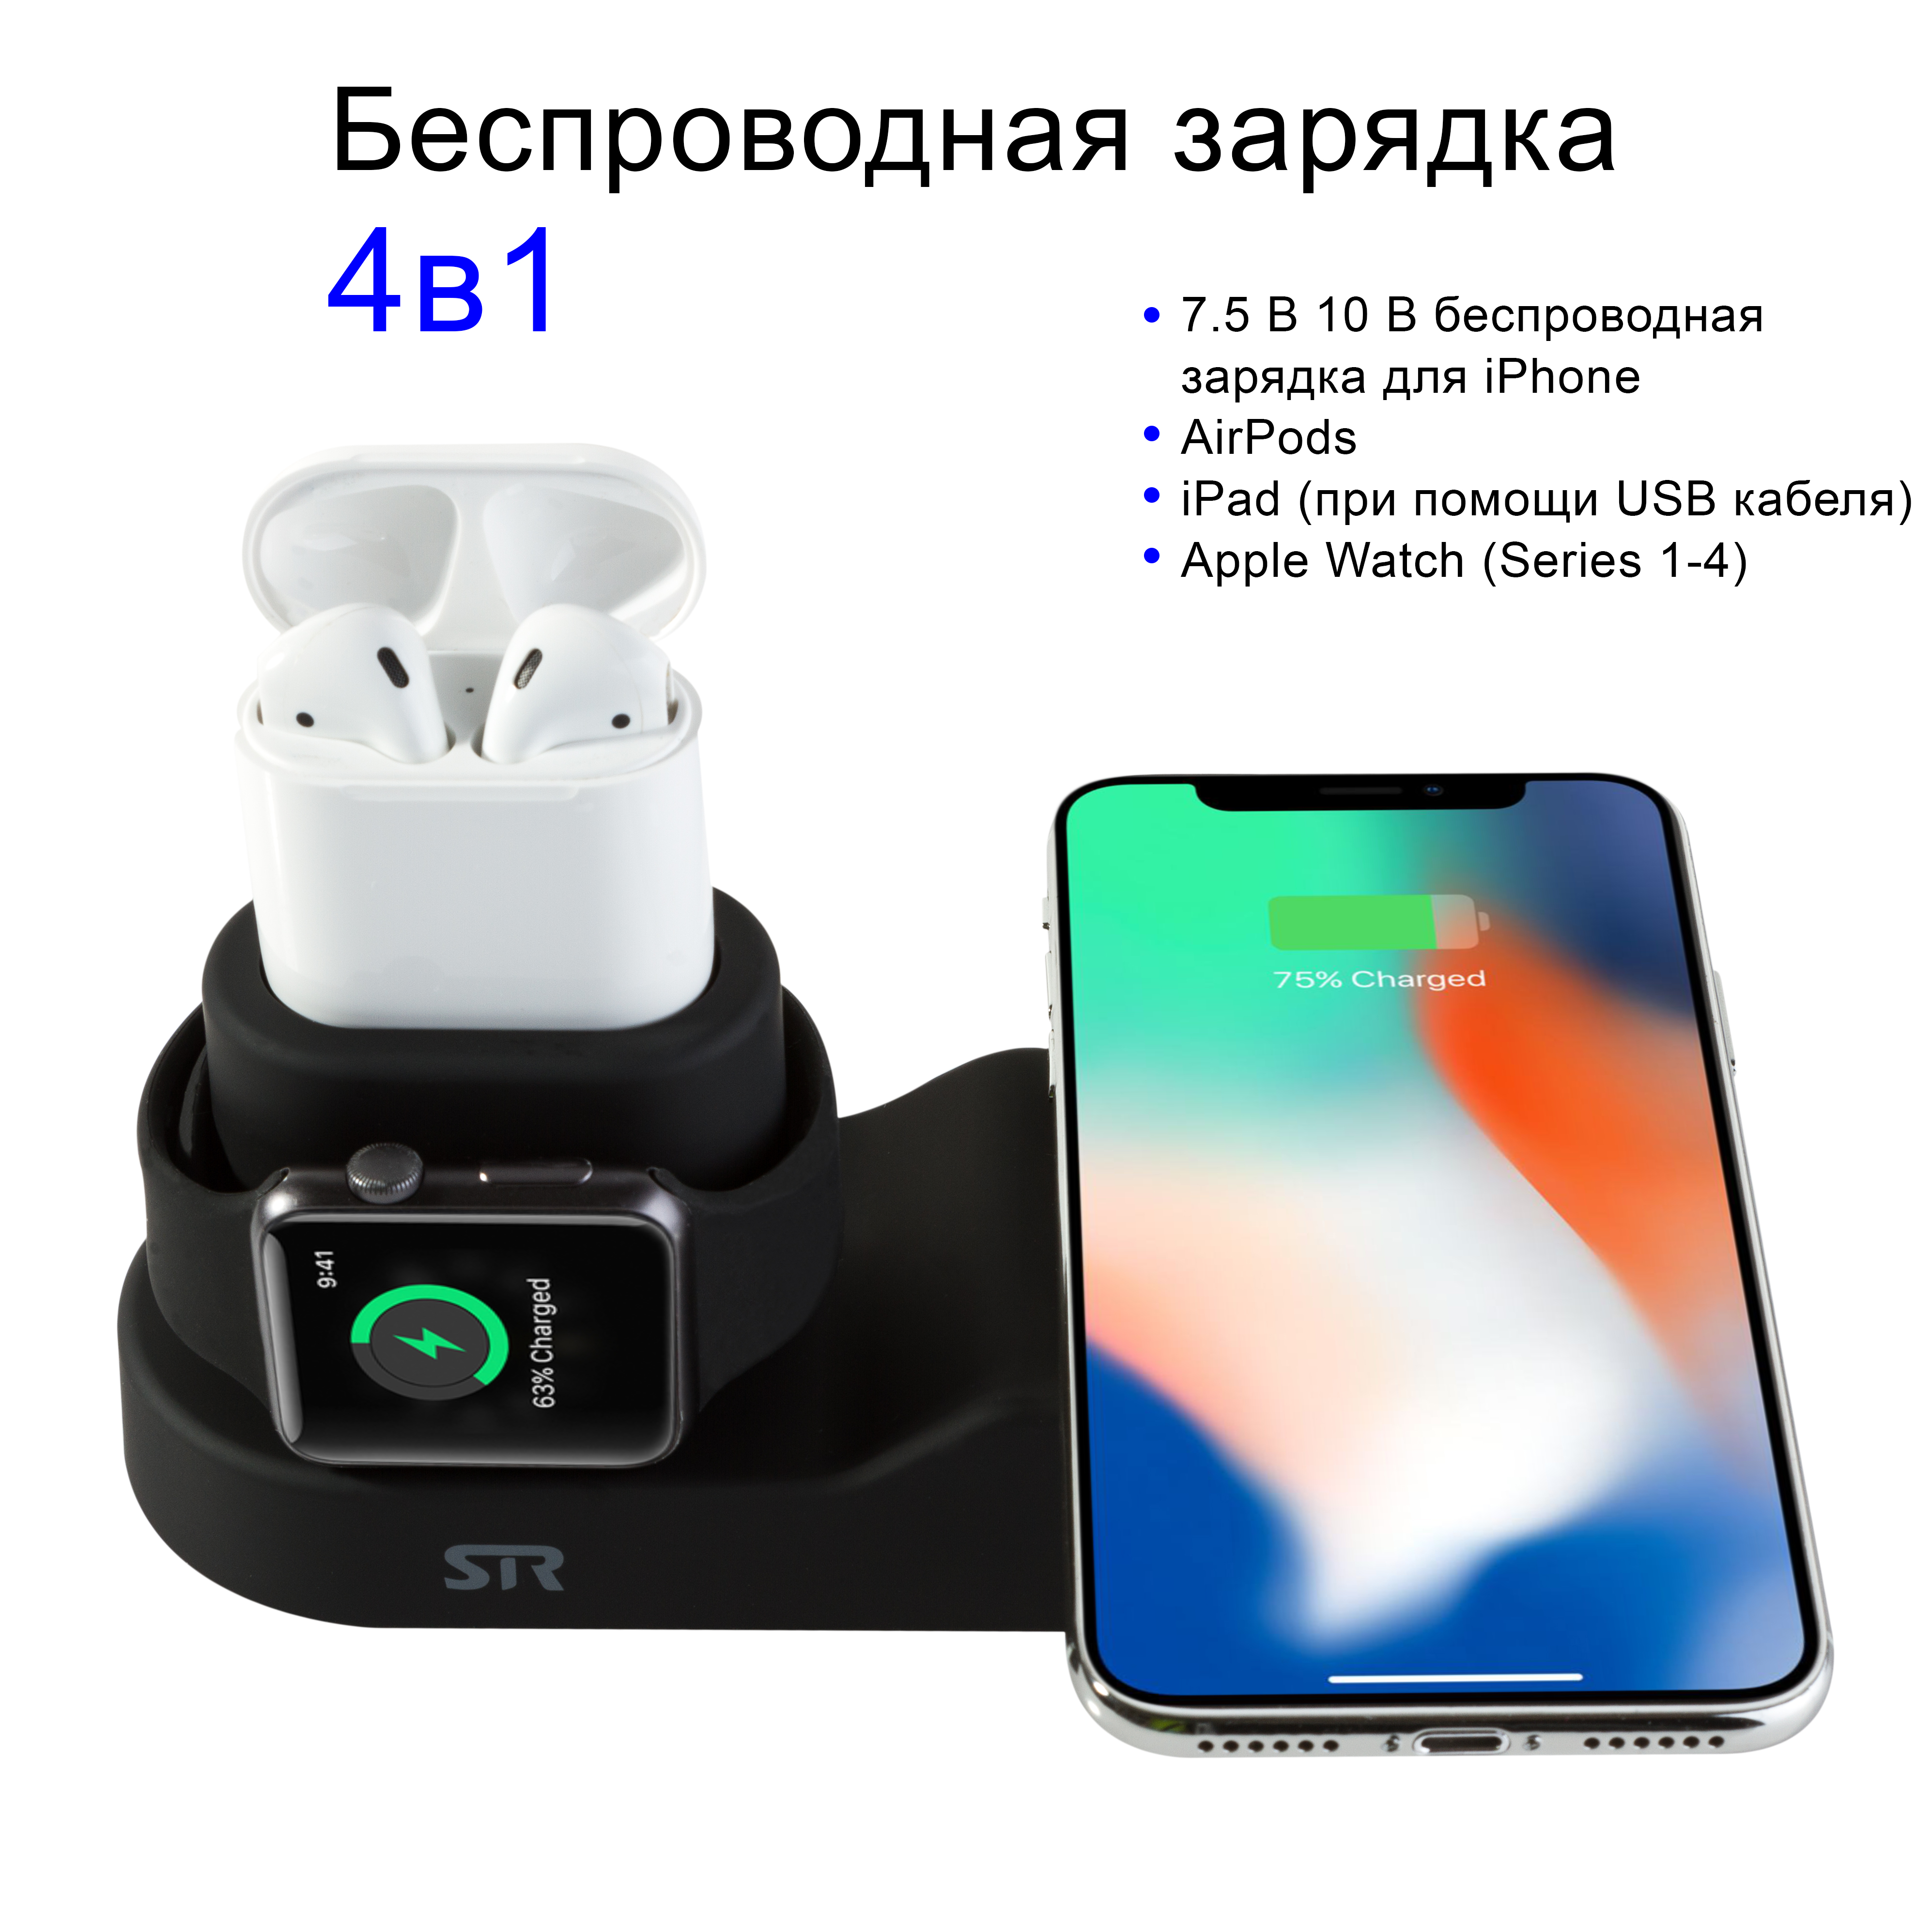 Док-станция STR 4 in 1 Wireless Charging Station for iPhone / Apple Watch / AirPods - Black